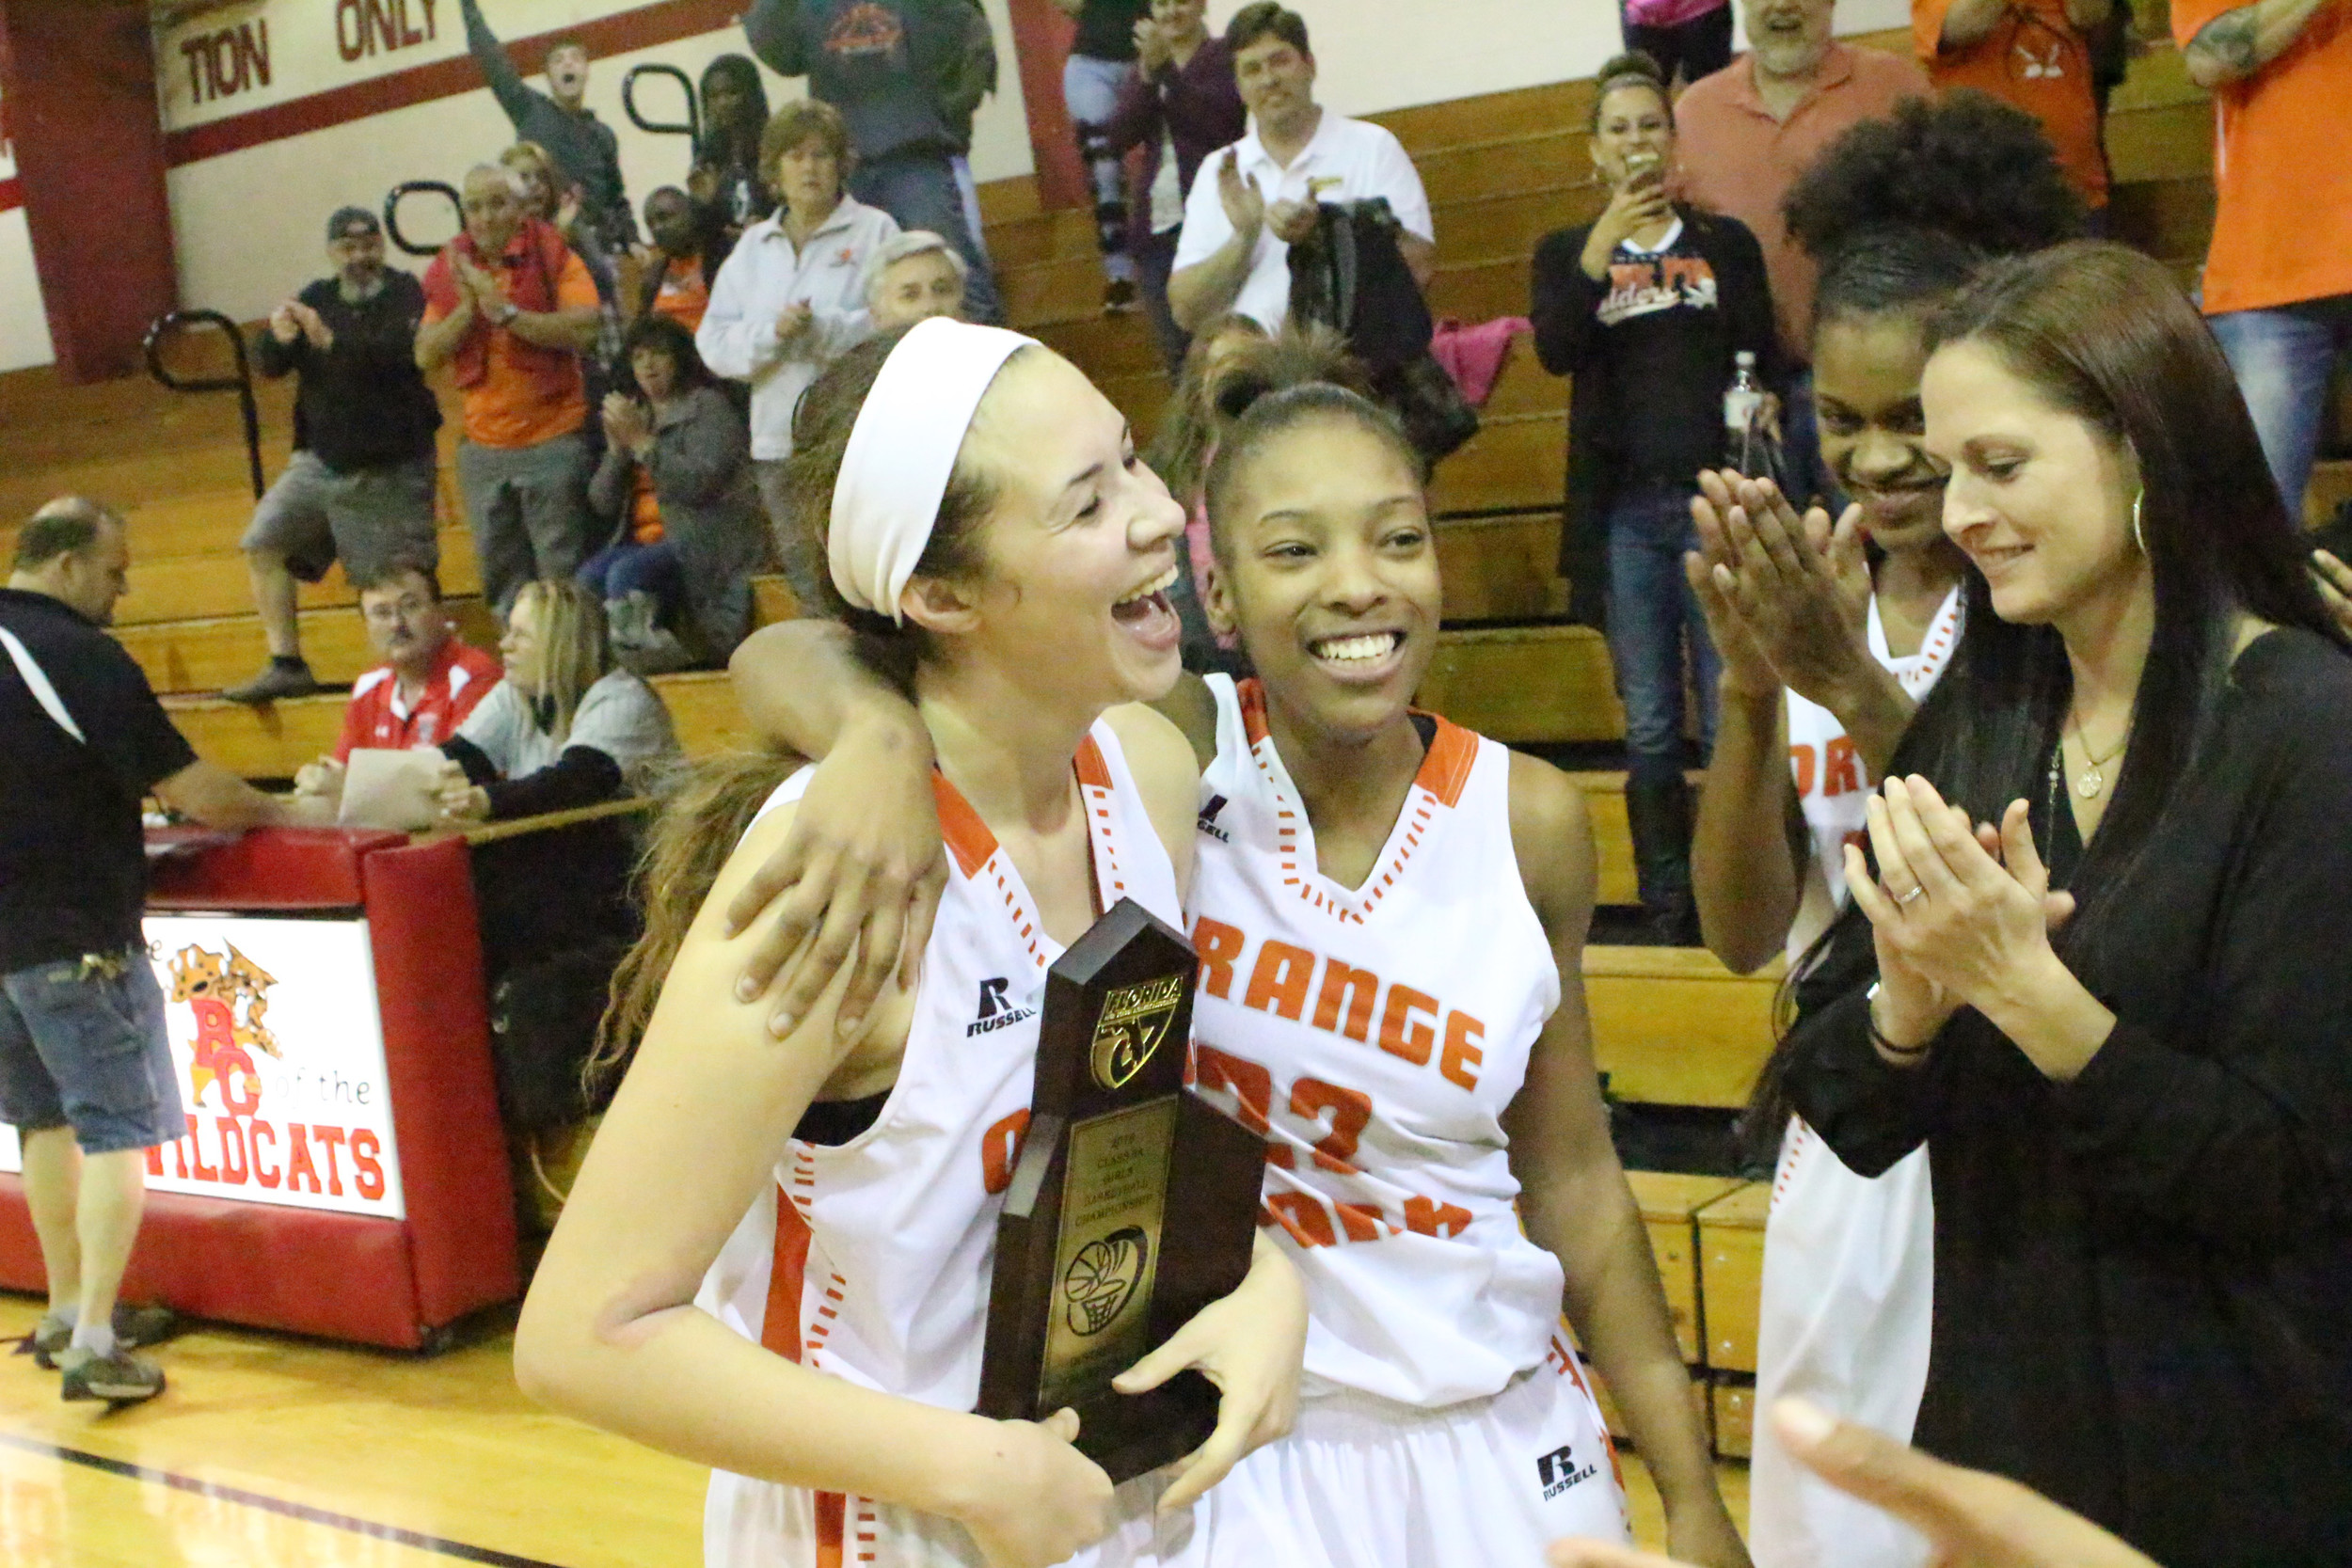 Orange Park High seniors, left to right, Gianni Ruemmeley, Maxine Knox and Shakarri Mack smile with coach Mandi Matricardi after receiving district 4-5A championship trophy after beating Westside High School 51-26 Friday at Baker County High School.